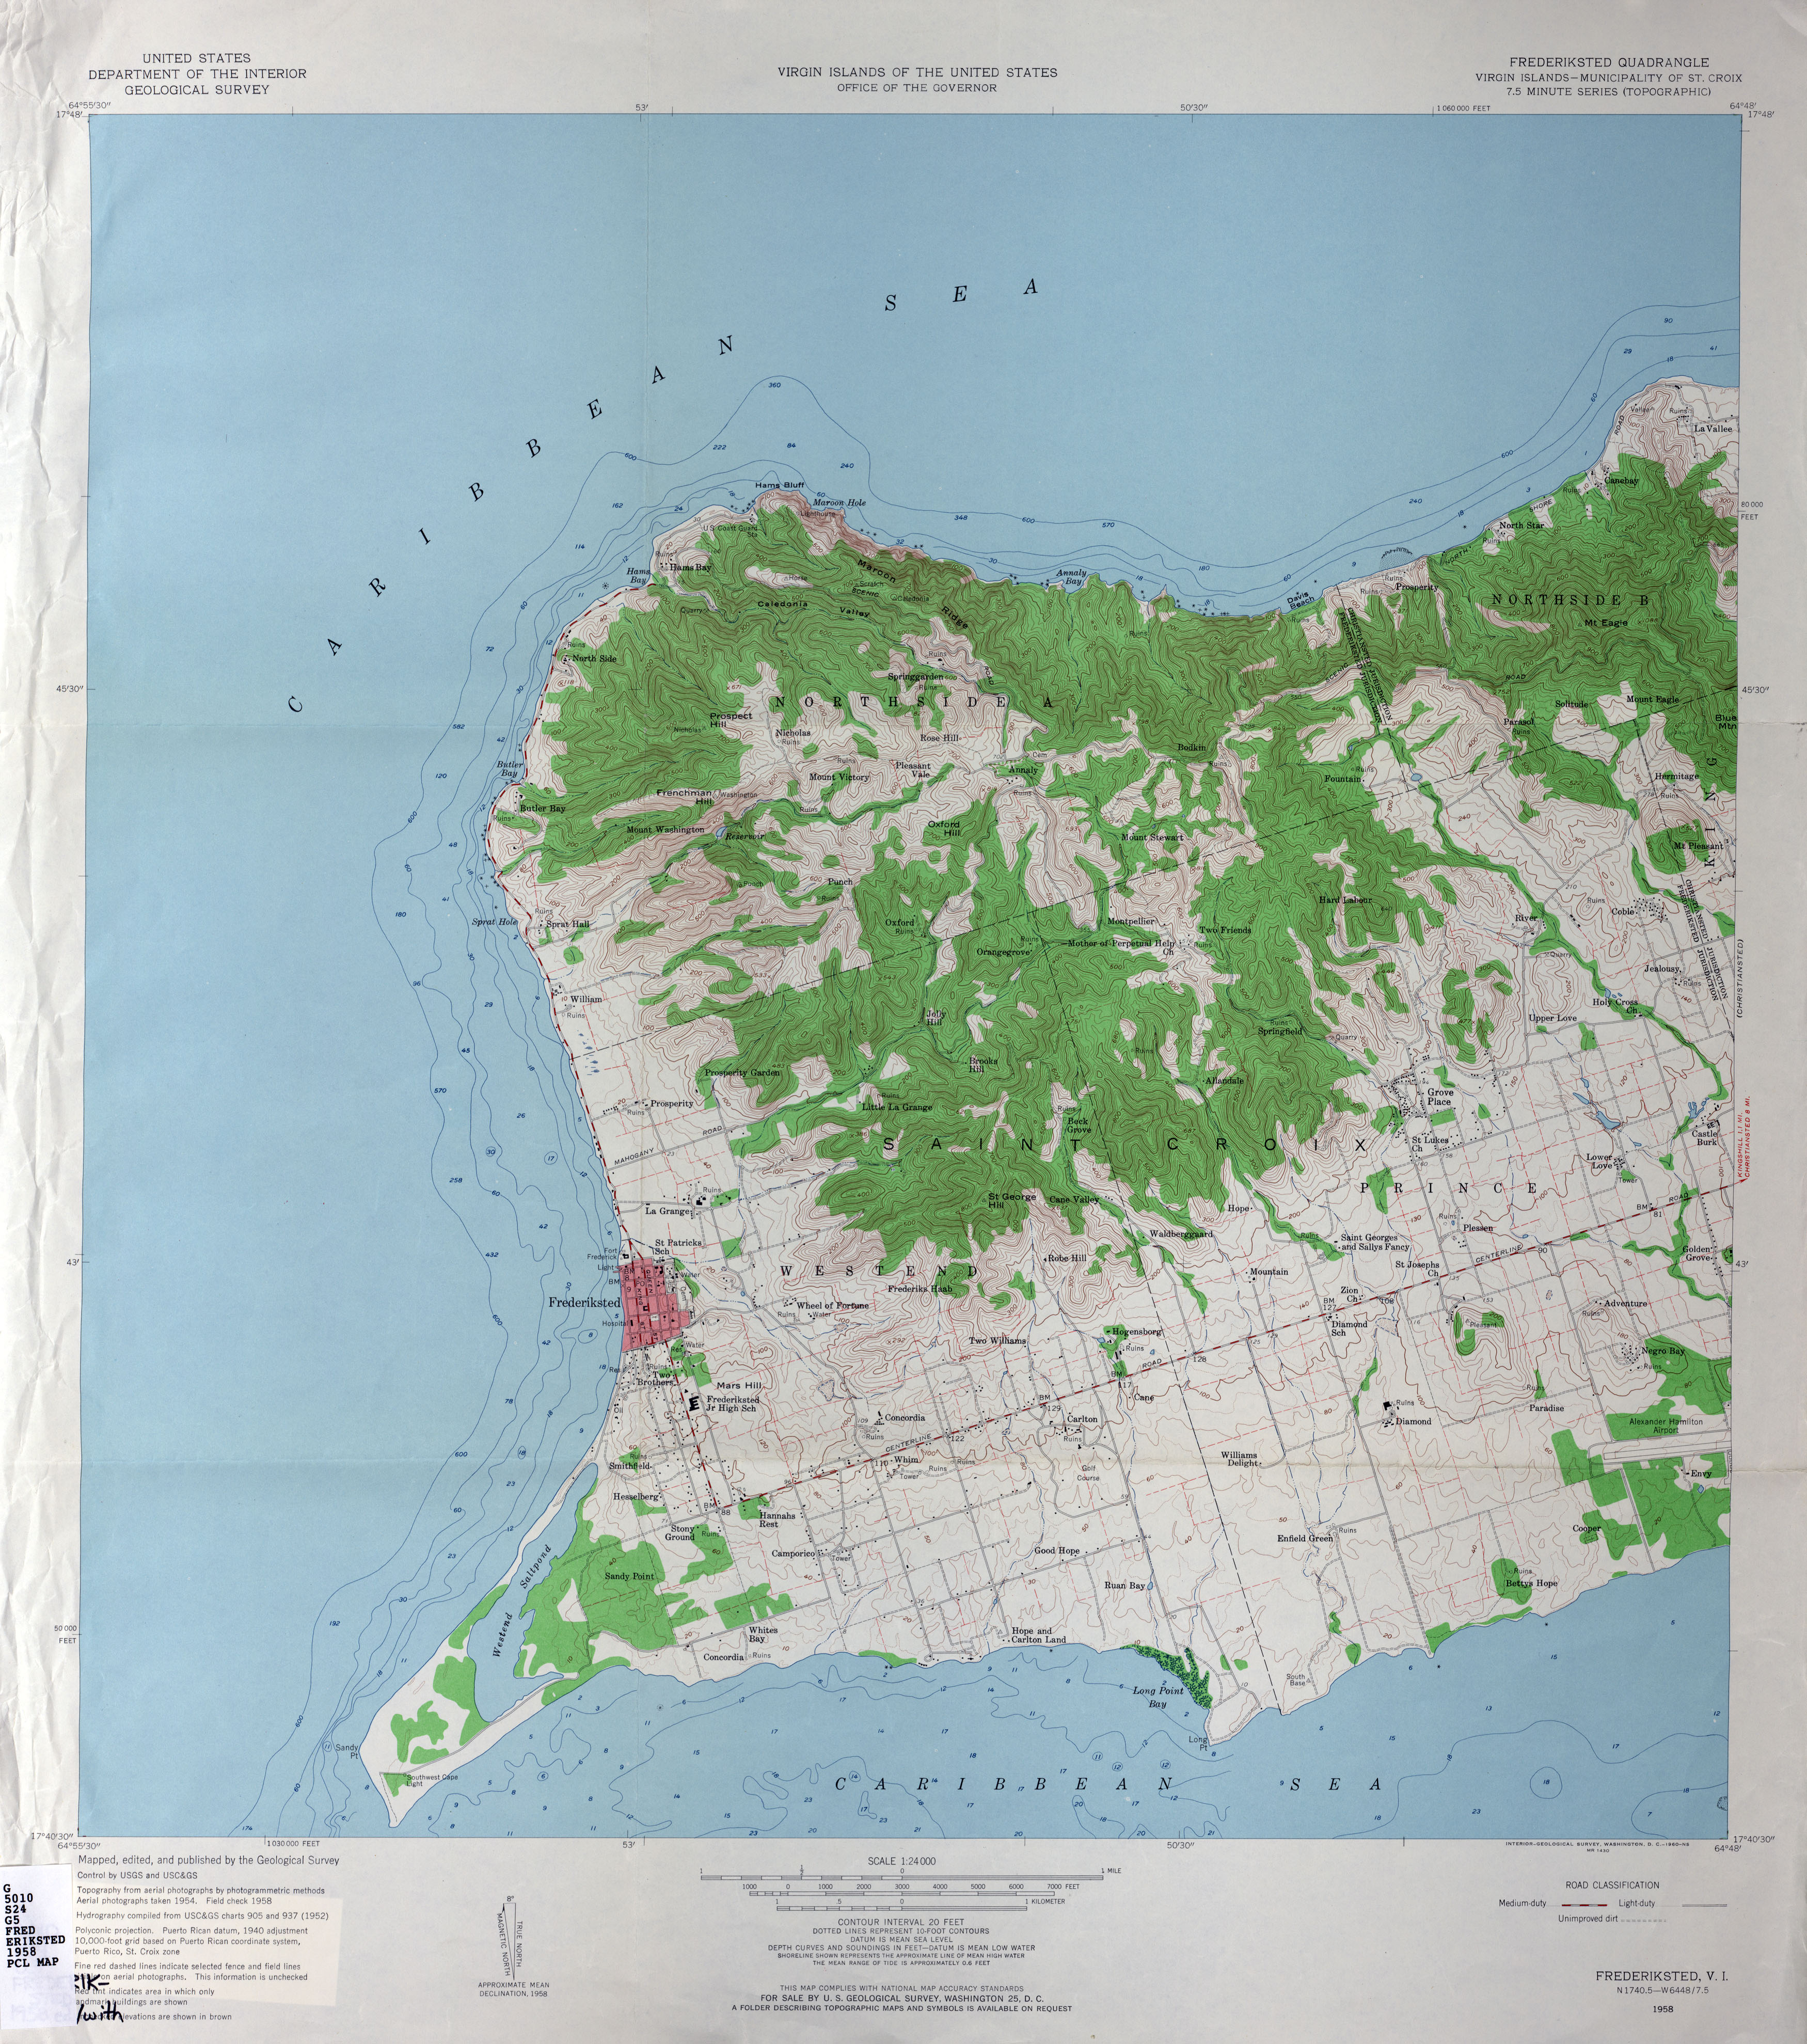 U.S. Virgin Islands Topographic Maps - Perry-Castañeda Map ...